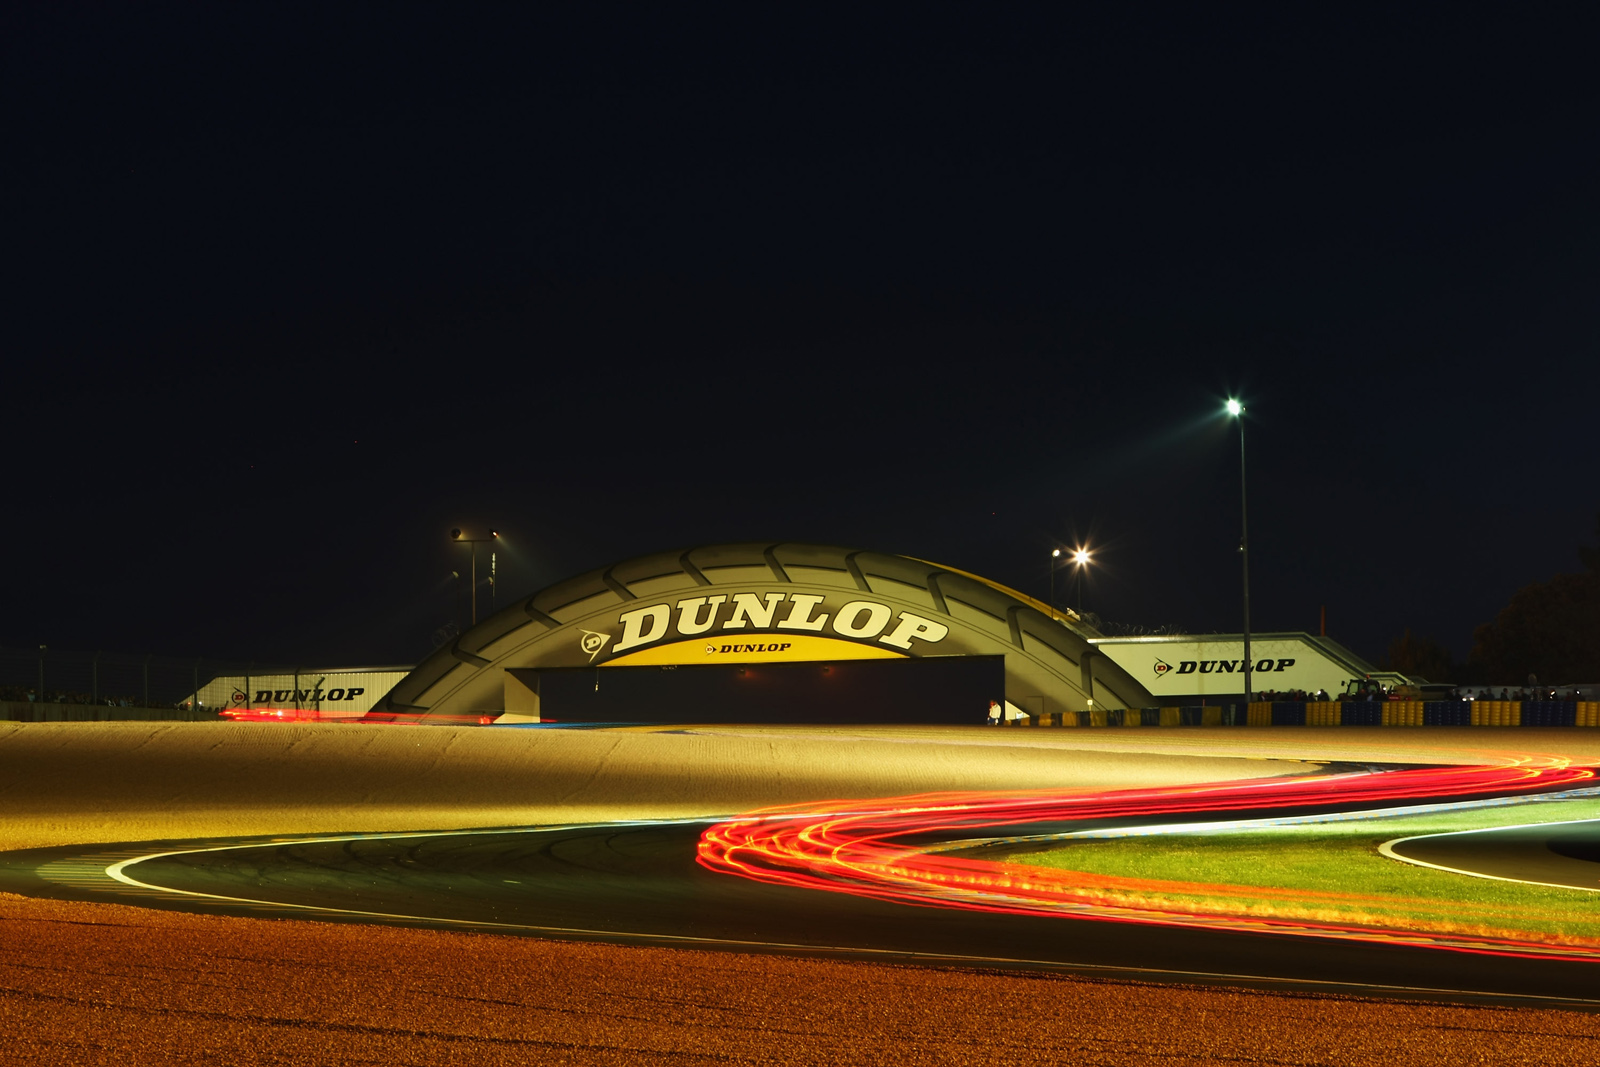 LE MANS, FRANCE - JUNE 14:  Cars go through the Dunlop Bridge Chicane during the 76th running of the Le Mans 24 Hour race at the Circuit des 24 Heures du Mans on June 14, 2008 in Le Mans, France.  (Photo by Mike Hewitt/Getty Images)